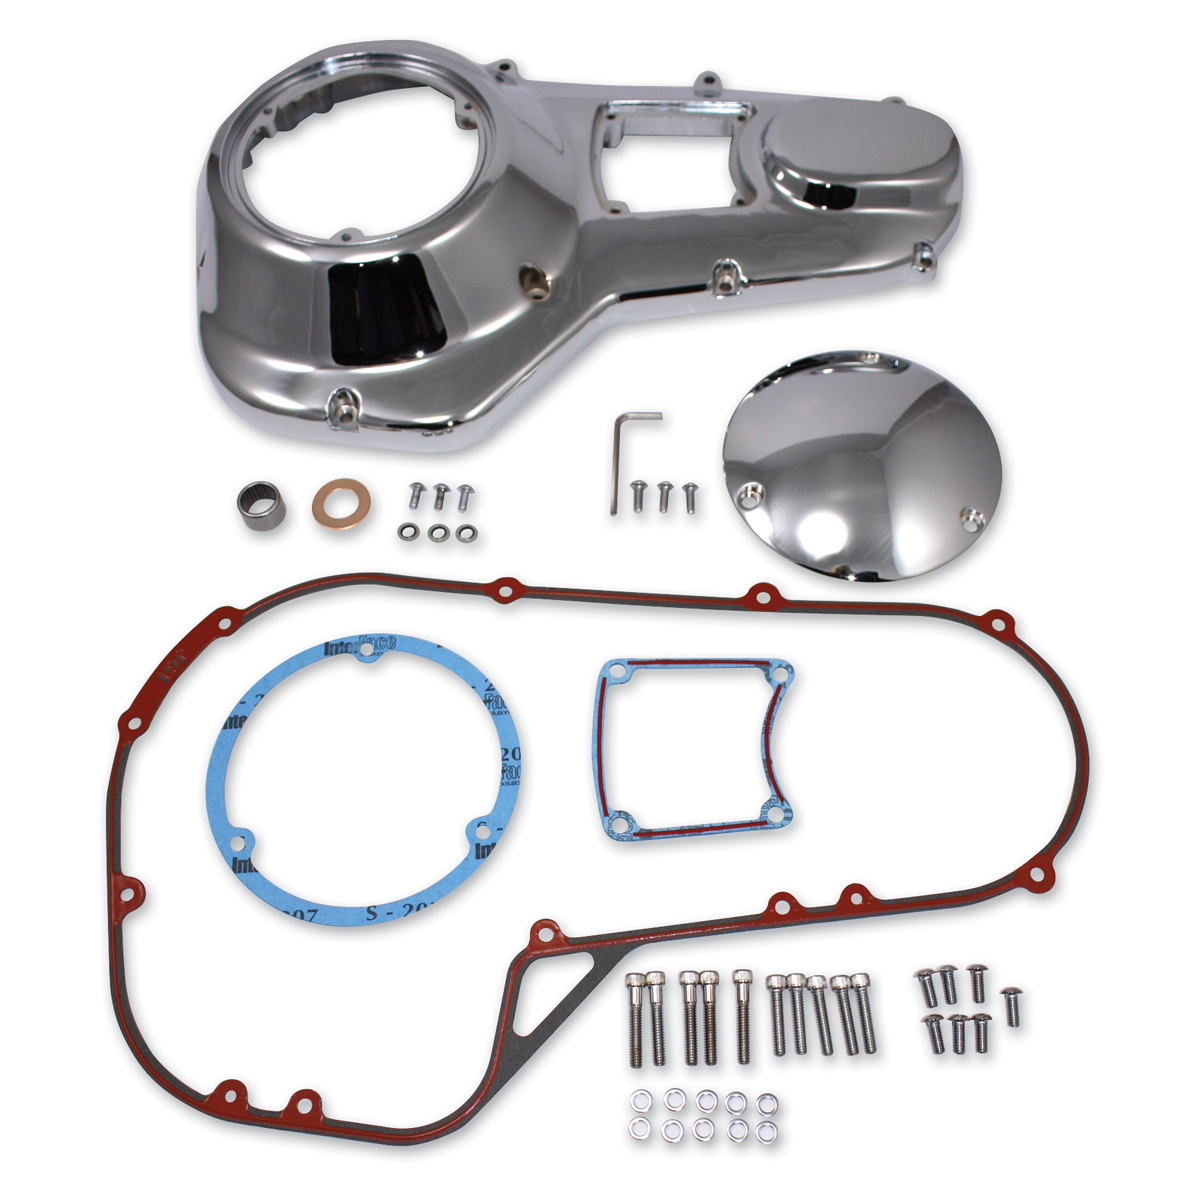 Chrome Primary Cover Kit for Harley Davidson by V-Twin